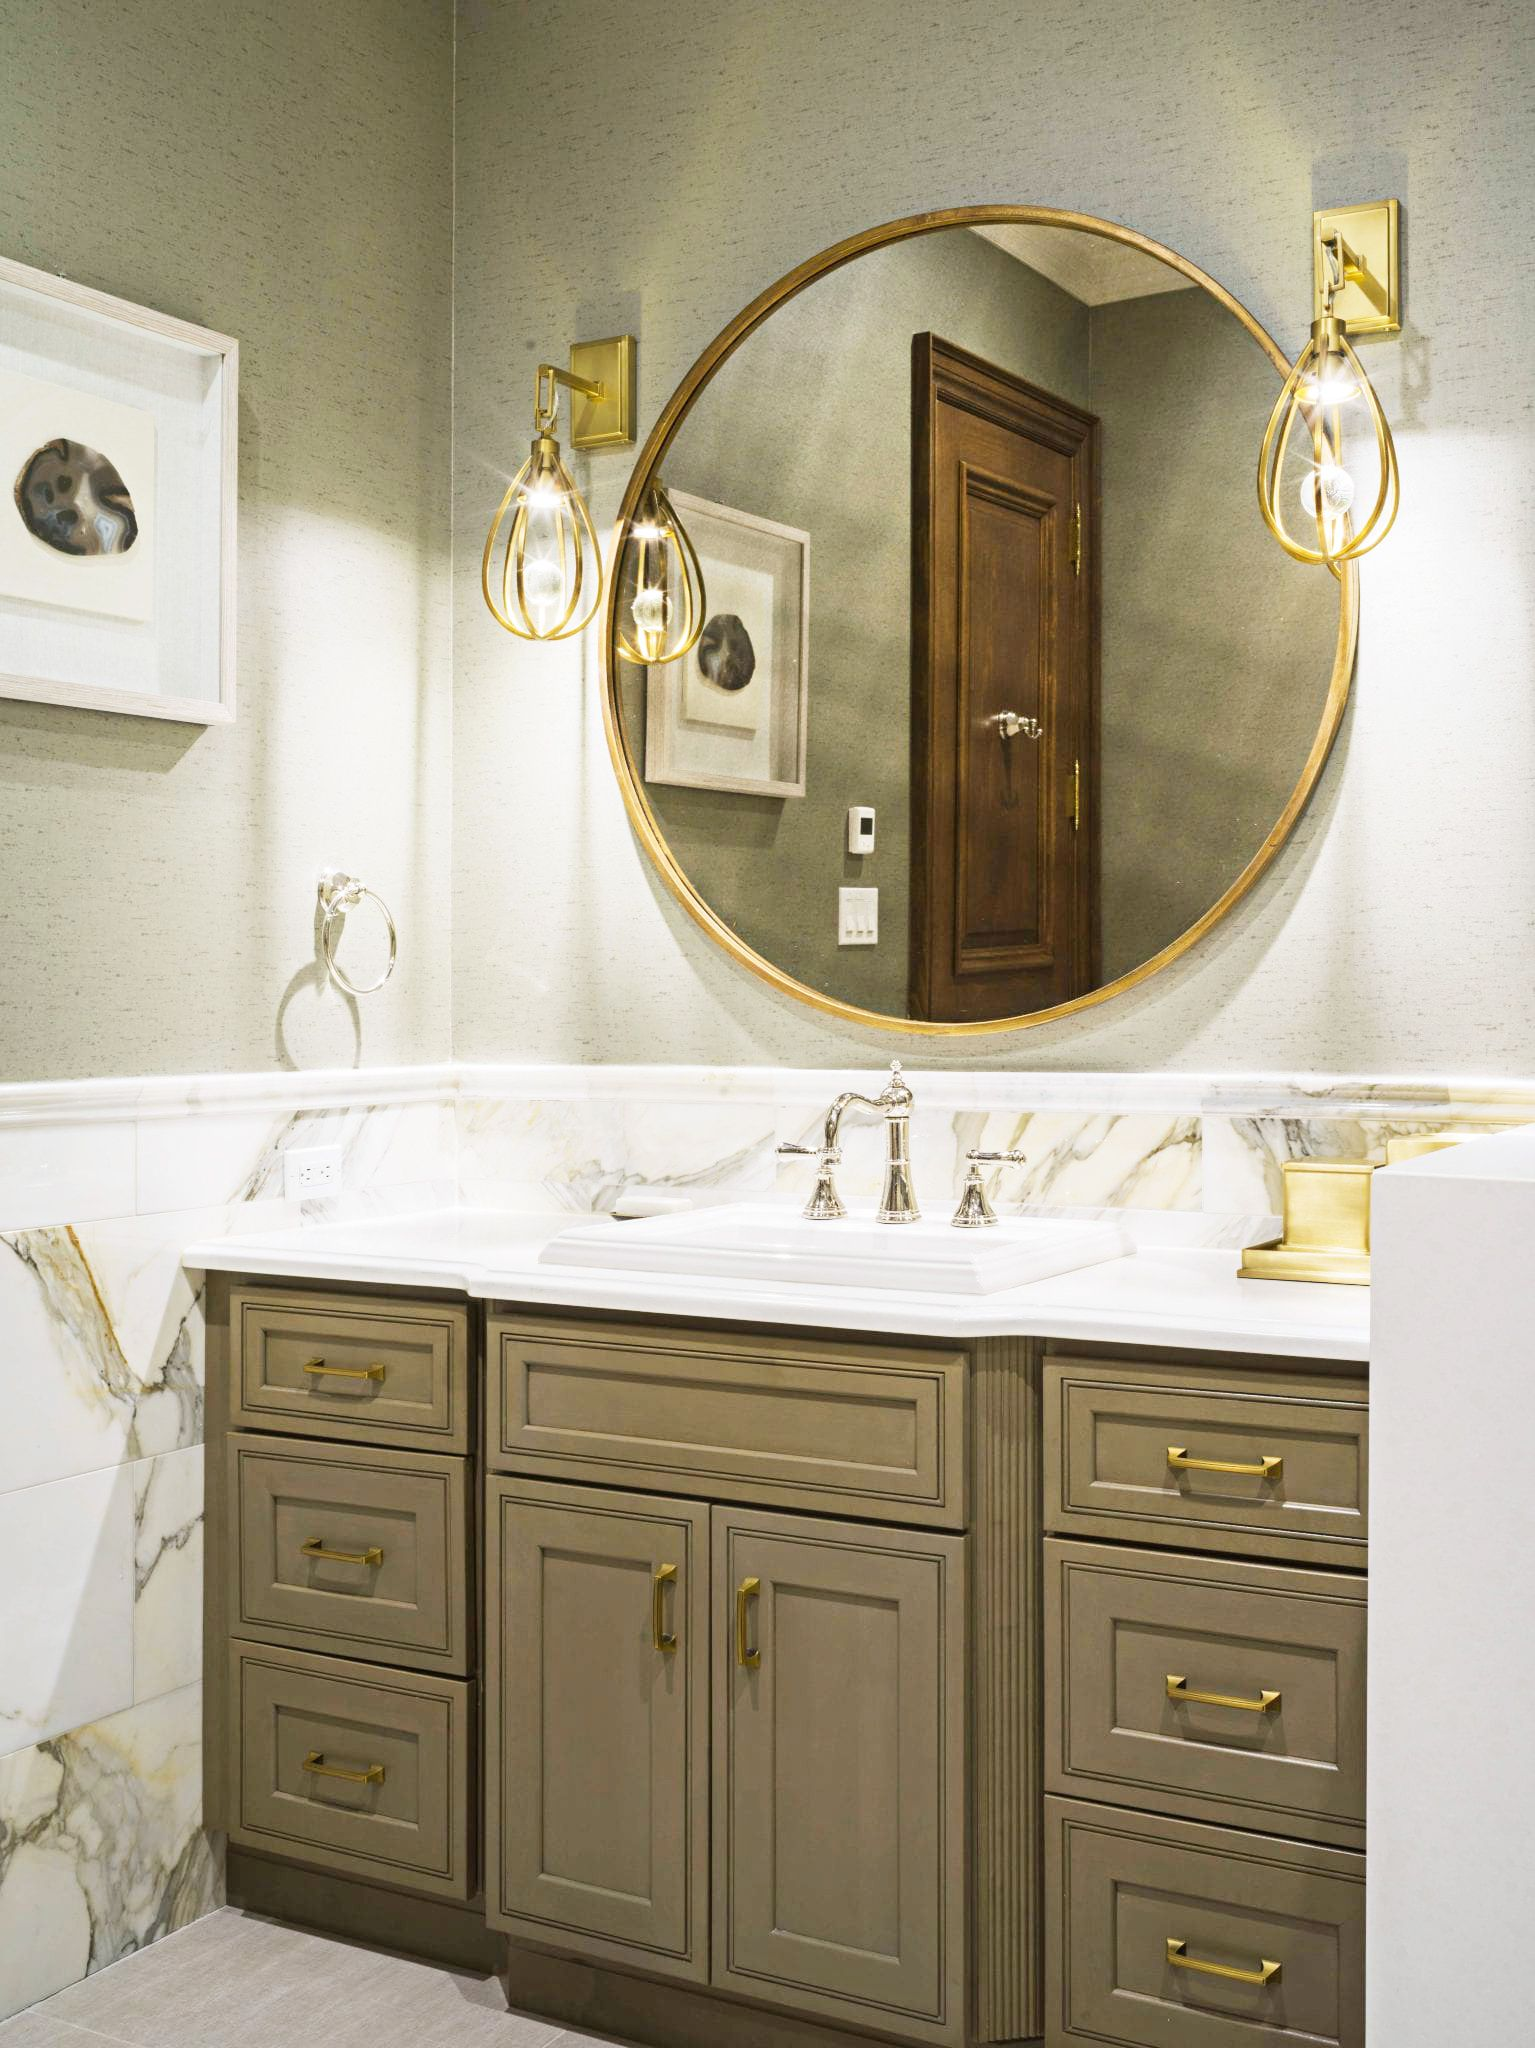 Pin On Home Cabinet Bathrooms